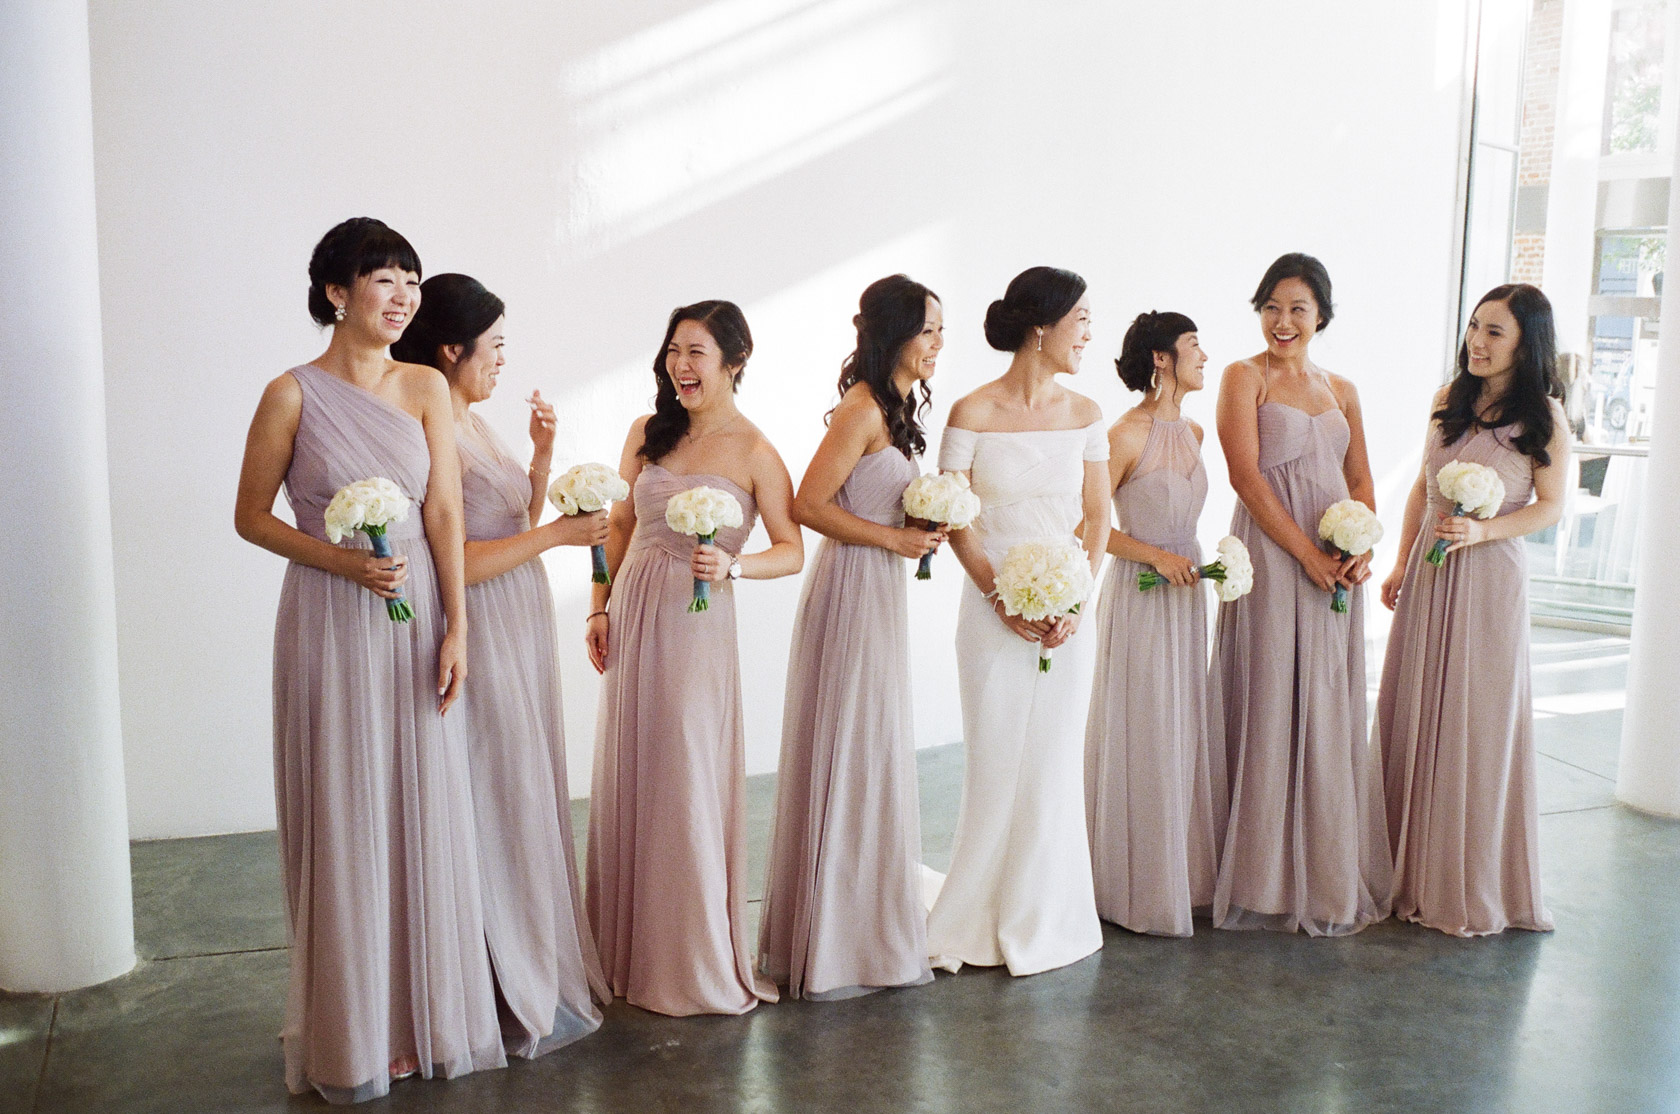 new orleans wedding bridesmaids on film at cac - 01